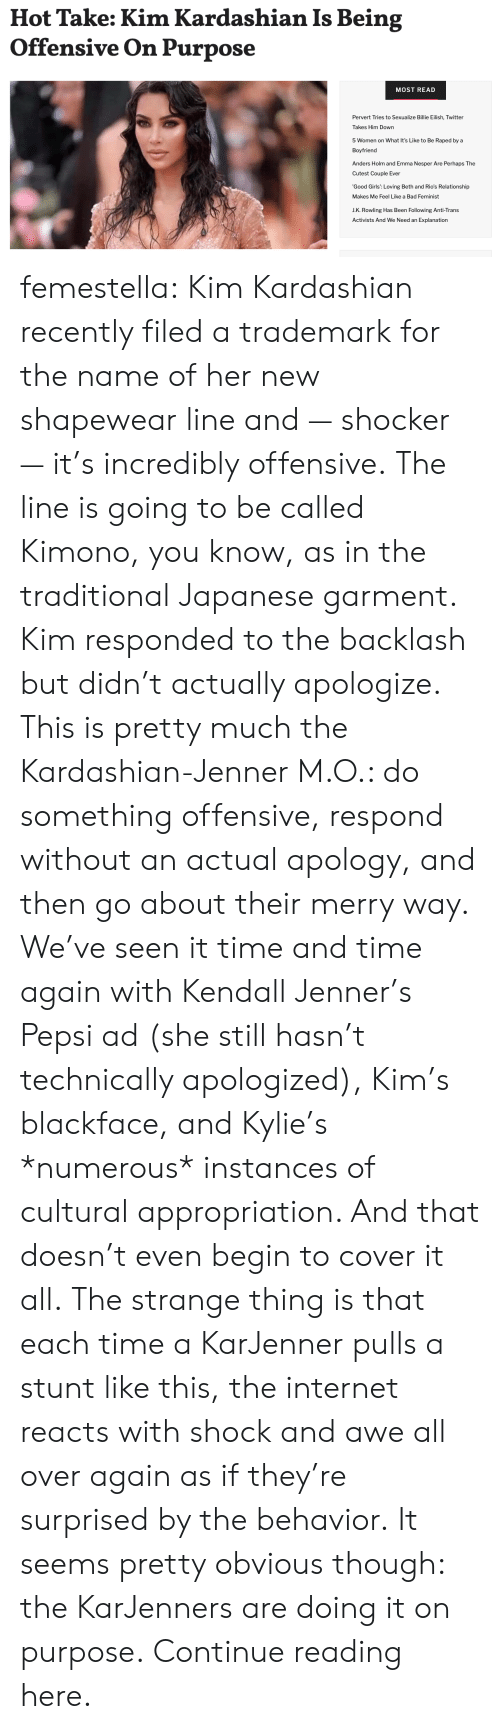 Kylie Jenner: Hot Take: Kim Kardashian Is Being  Offensive On Purpose  MOST READ  Pervert Tries to Sexualize Billie Eilish, Twitter  Takes Him Down  5 Women on What It's Like to Be Raped by a  Boyfriend  Anders Holm and Emma Nesper Are Perhaps The  Cutest Couple Ever  'Good Girls': Loving Beth and Rio's Relationship  Makes Me Feel Like a Bad Feminist  J.K. Rowling Has Been Following Anti-Trans  Activists And We Need an Explanation femestella: Kim Kardashian recently filed a trademark for the name of her new shapewear line and — shocker — it's incredibly offensive. The line is going to be called Kimono, you know, as in the traditional Japanese garment.  Kim responded to the backlash but didn't actually apologize. This is pretty much the Kardashian-Jenner M.O.: do something offensive, respond without an actual apology, and then go about their merry way. We've seen it time and time again with Kendall Jenner's Pepsi ad (she still hasn't technically apologized), Kim's blackface, and Kylie's *numerous* instances of cultural appropriation. And that doesn't even begin to cover it all. The strange thing is that each time a KarJenner pulls a stunt like this, the internet reacts with shock and awe all over again as if they're surprised by the behavior. It seems pretty obvious though: the KarJenners are doing it on purpose. Continue reading here.